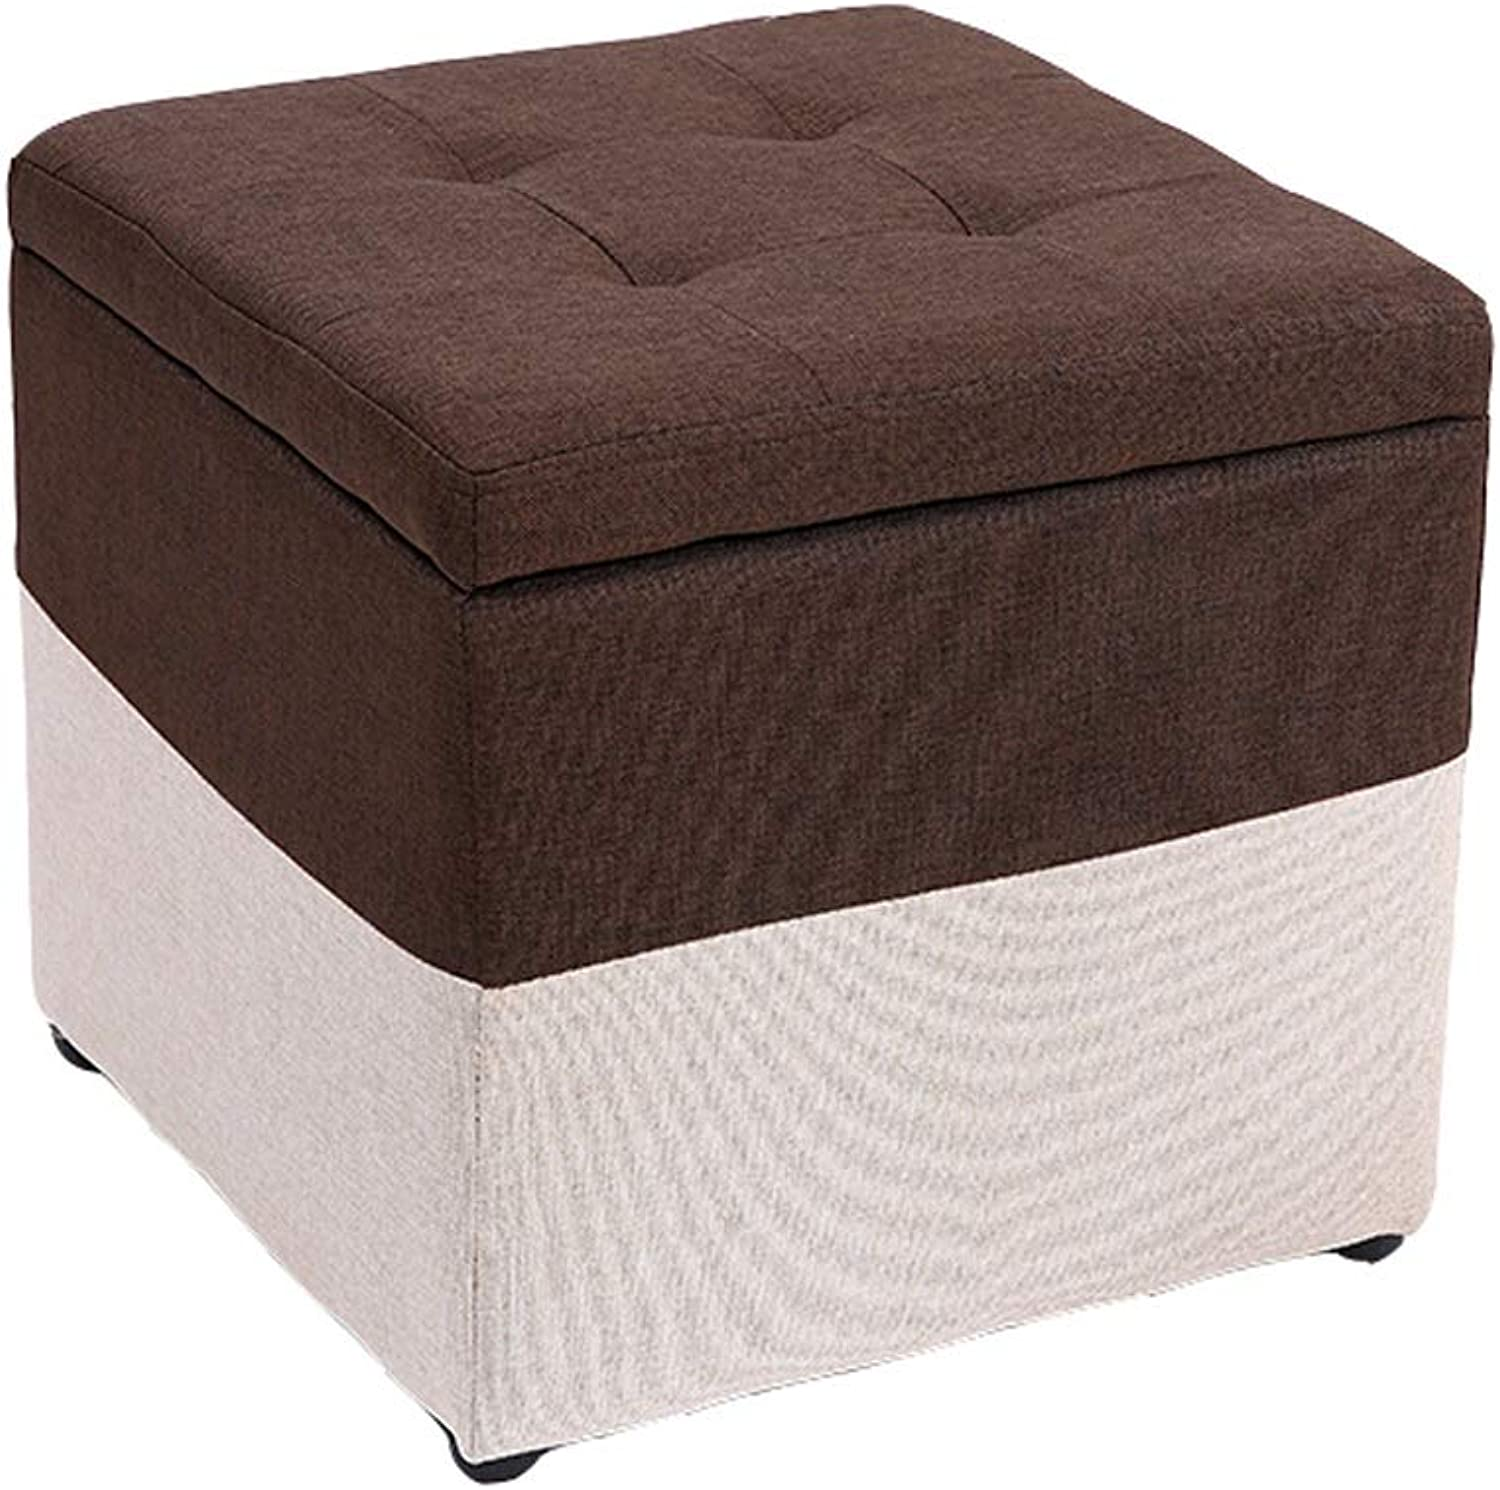 JCOCO Storage Stool-Multifunctional Fabric Stool Storage Stool Fashion shoes Bench Storage Stool 40  40  40CM (color   Brown)